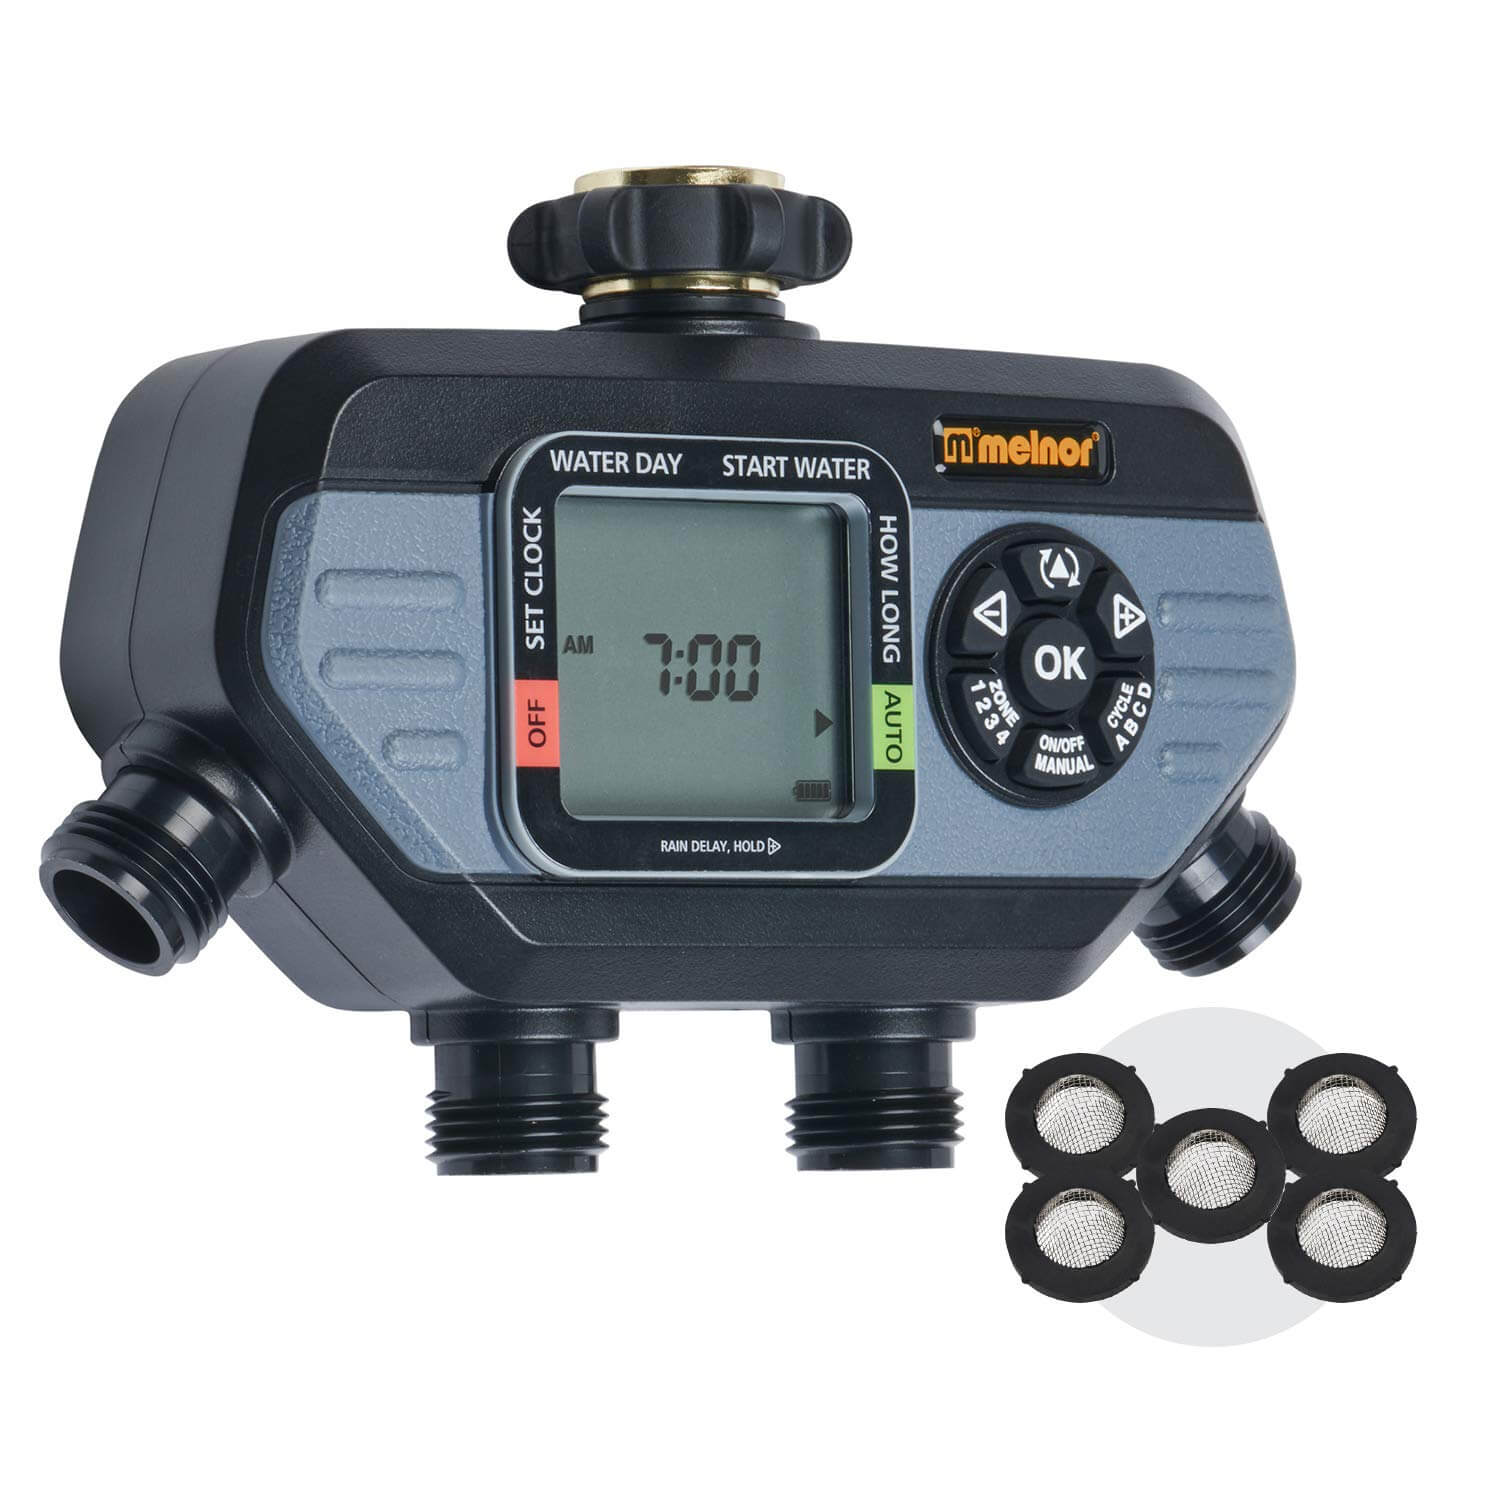 Melnor HydroLogic Water Timers